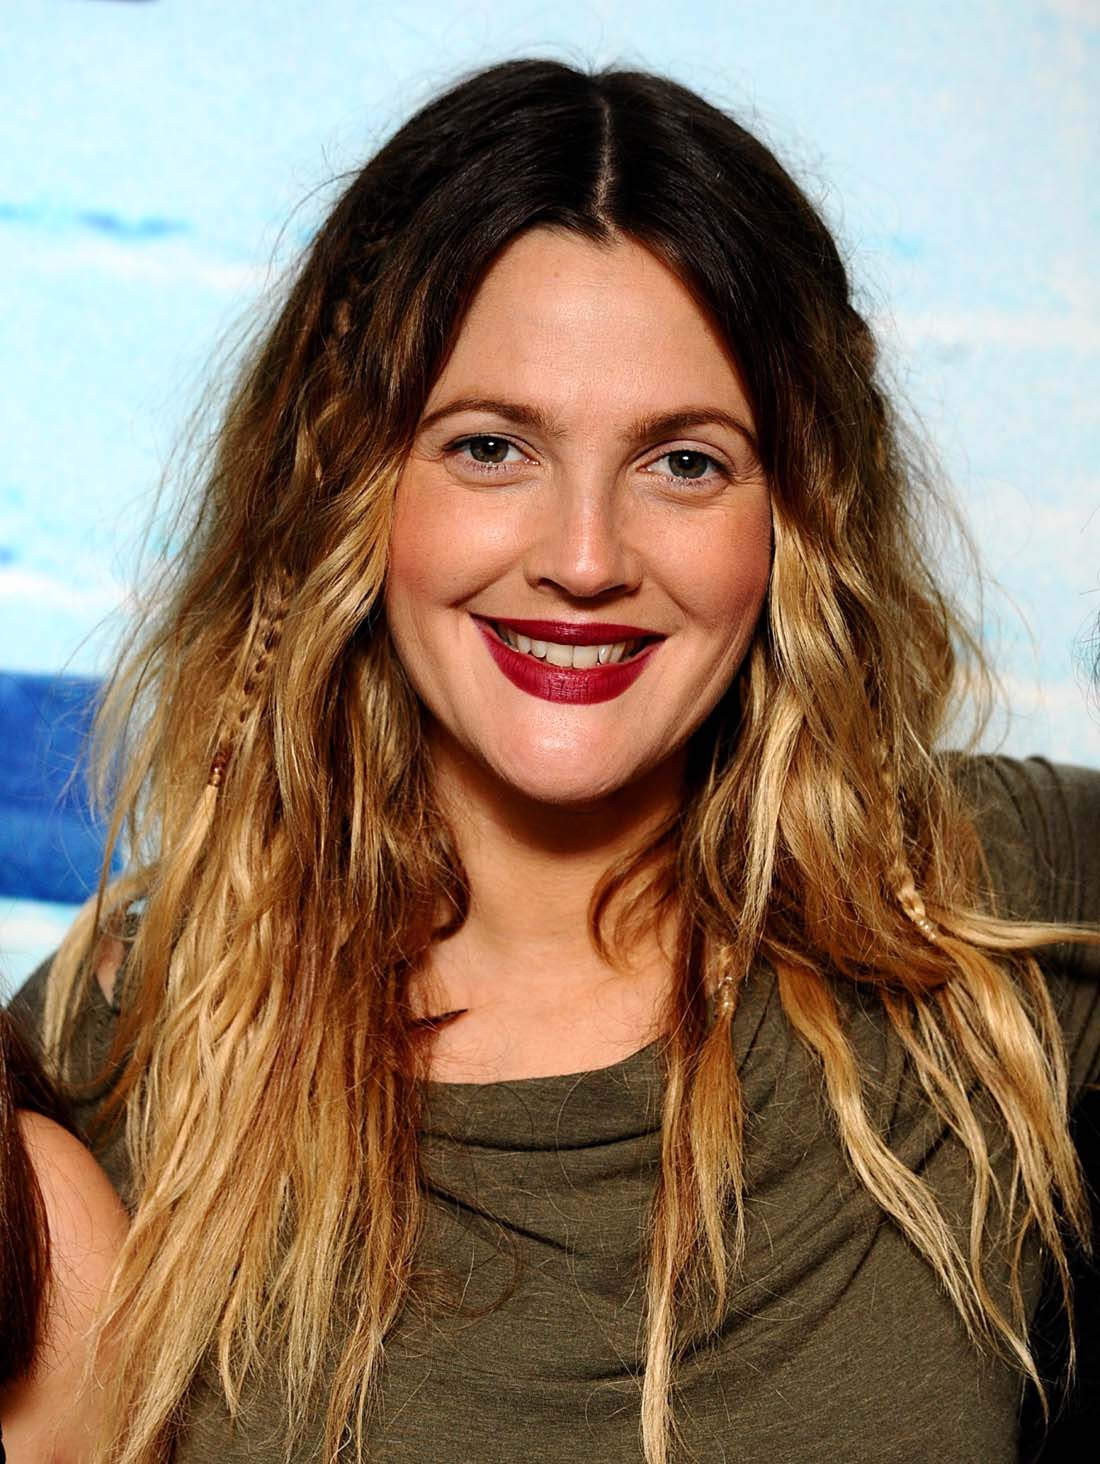 Drew Barrymore Photo Gallery Showcase Sheclick